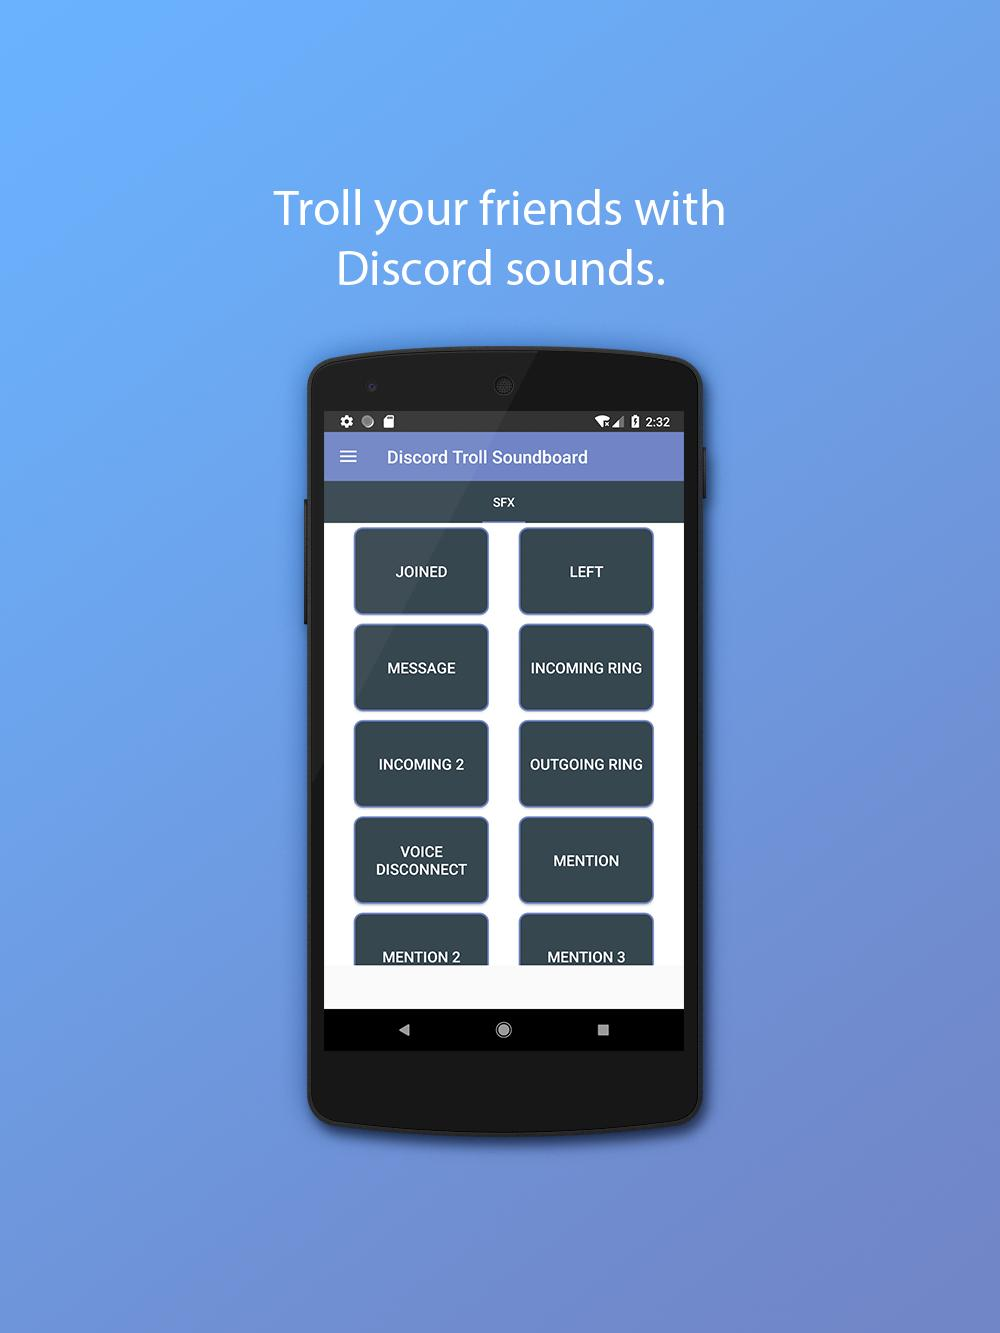 Discord Troll Soundboard for Android - APK Download